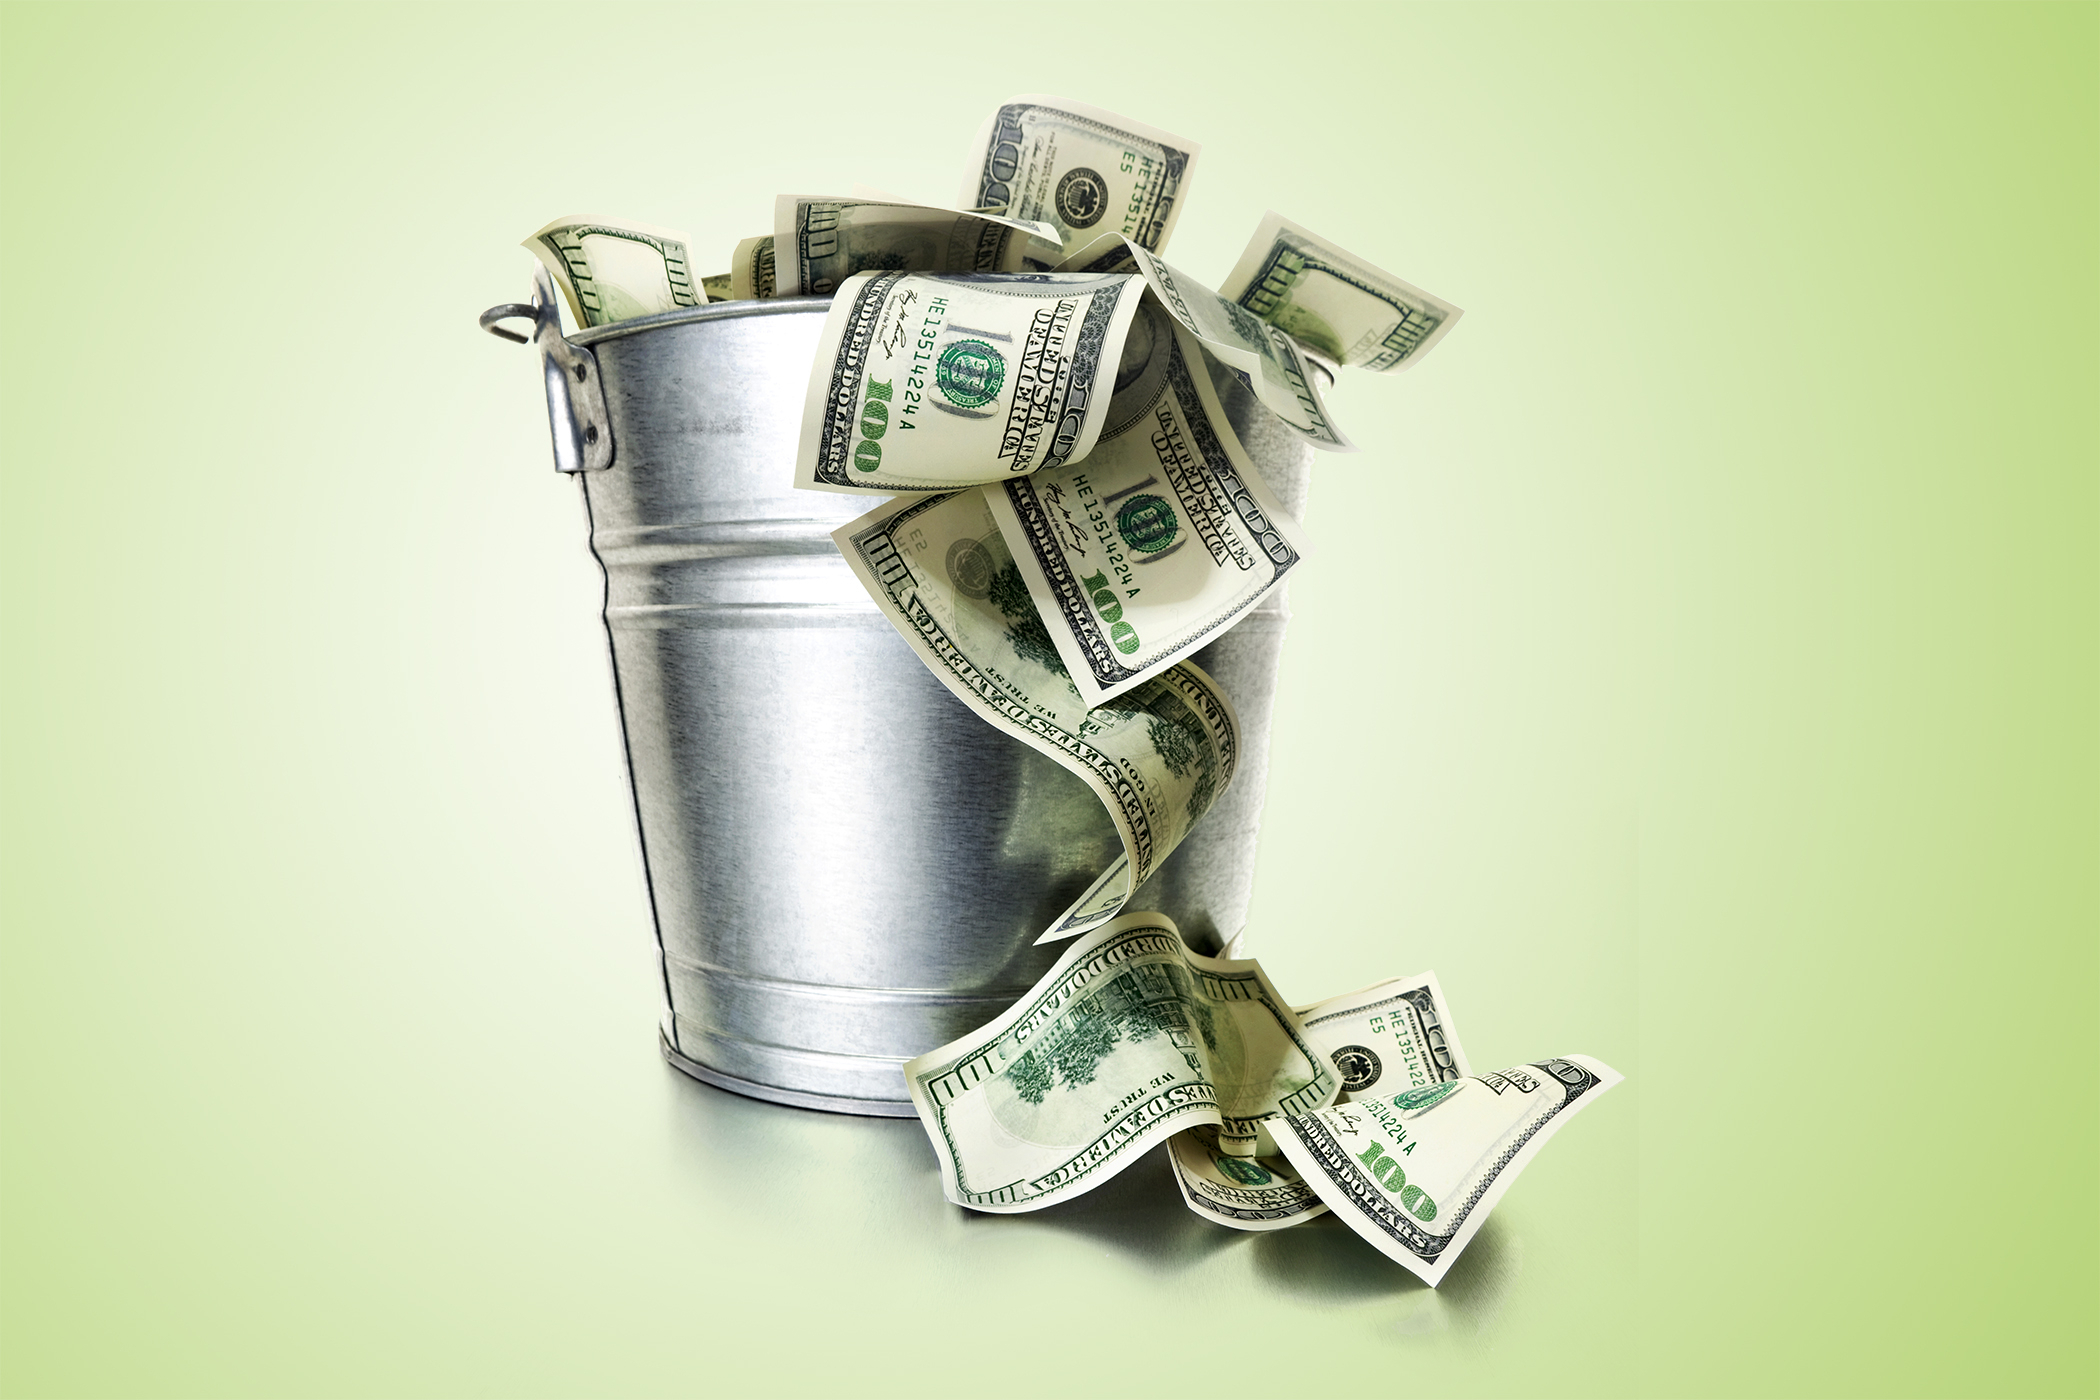 Buckets Of Money Spreadsheet For Retirement Income: Here's How To Use The Bucket Approach  Money Buckets Of Money Spreadsheet Printable Spreadshee Printable Spreadshee buckets of money spreadsheet